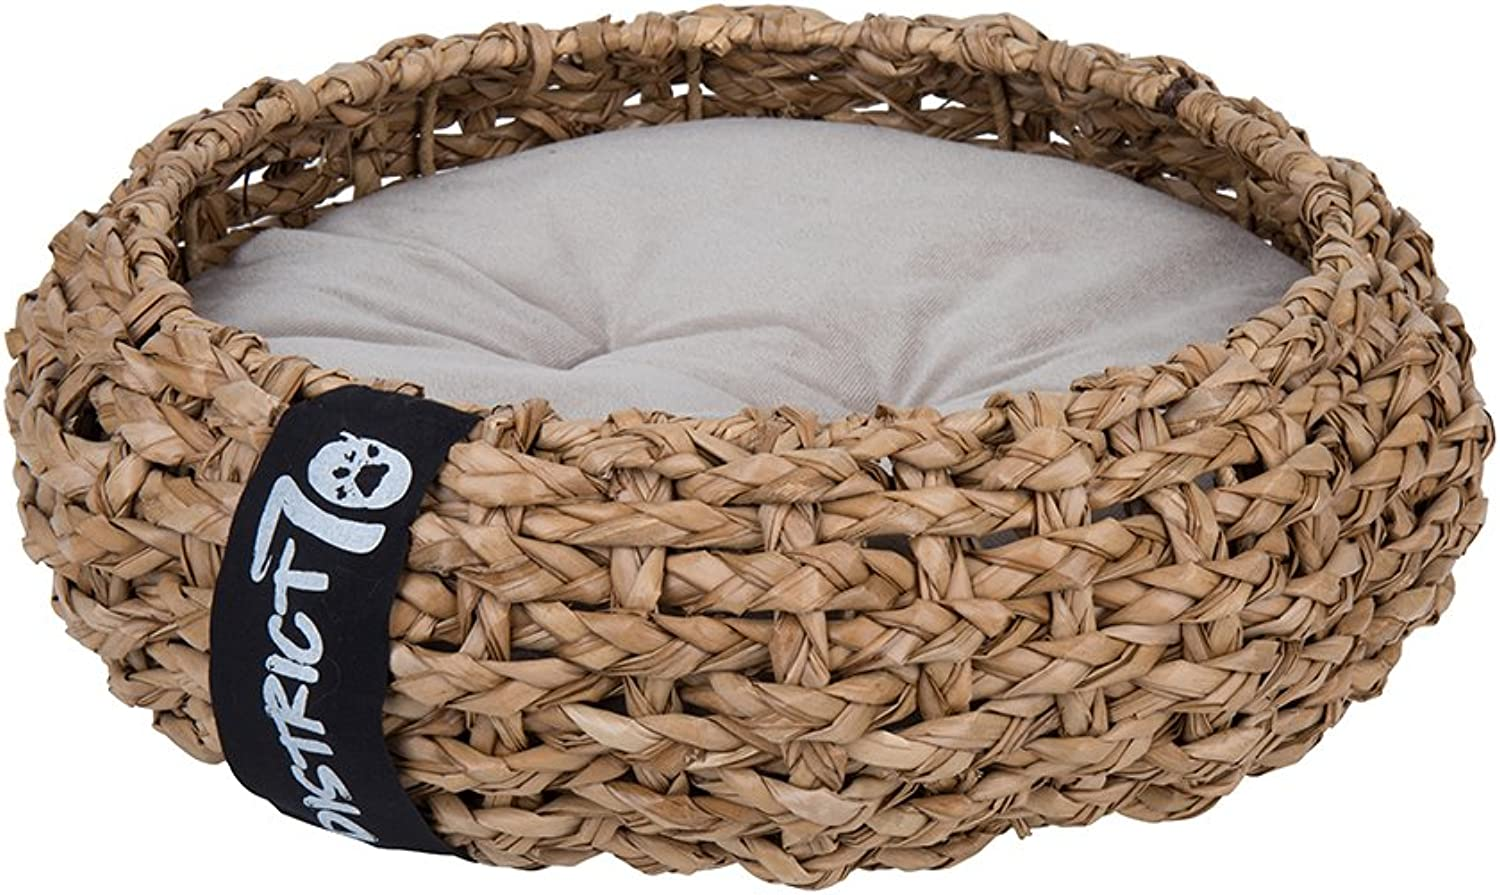 District 70 Cocoon Cat Bed and Dog Bed, 40 x 40 x 15 cm, Size, S,  Brown